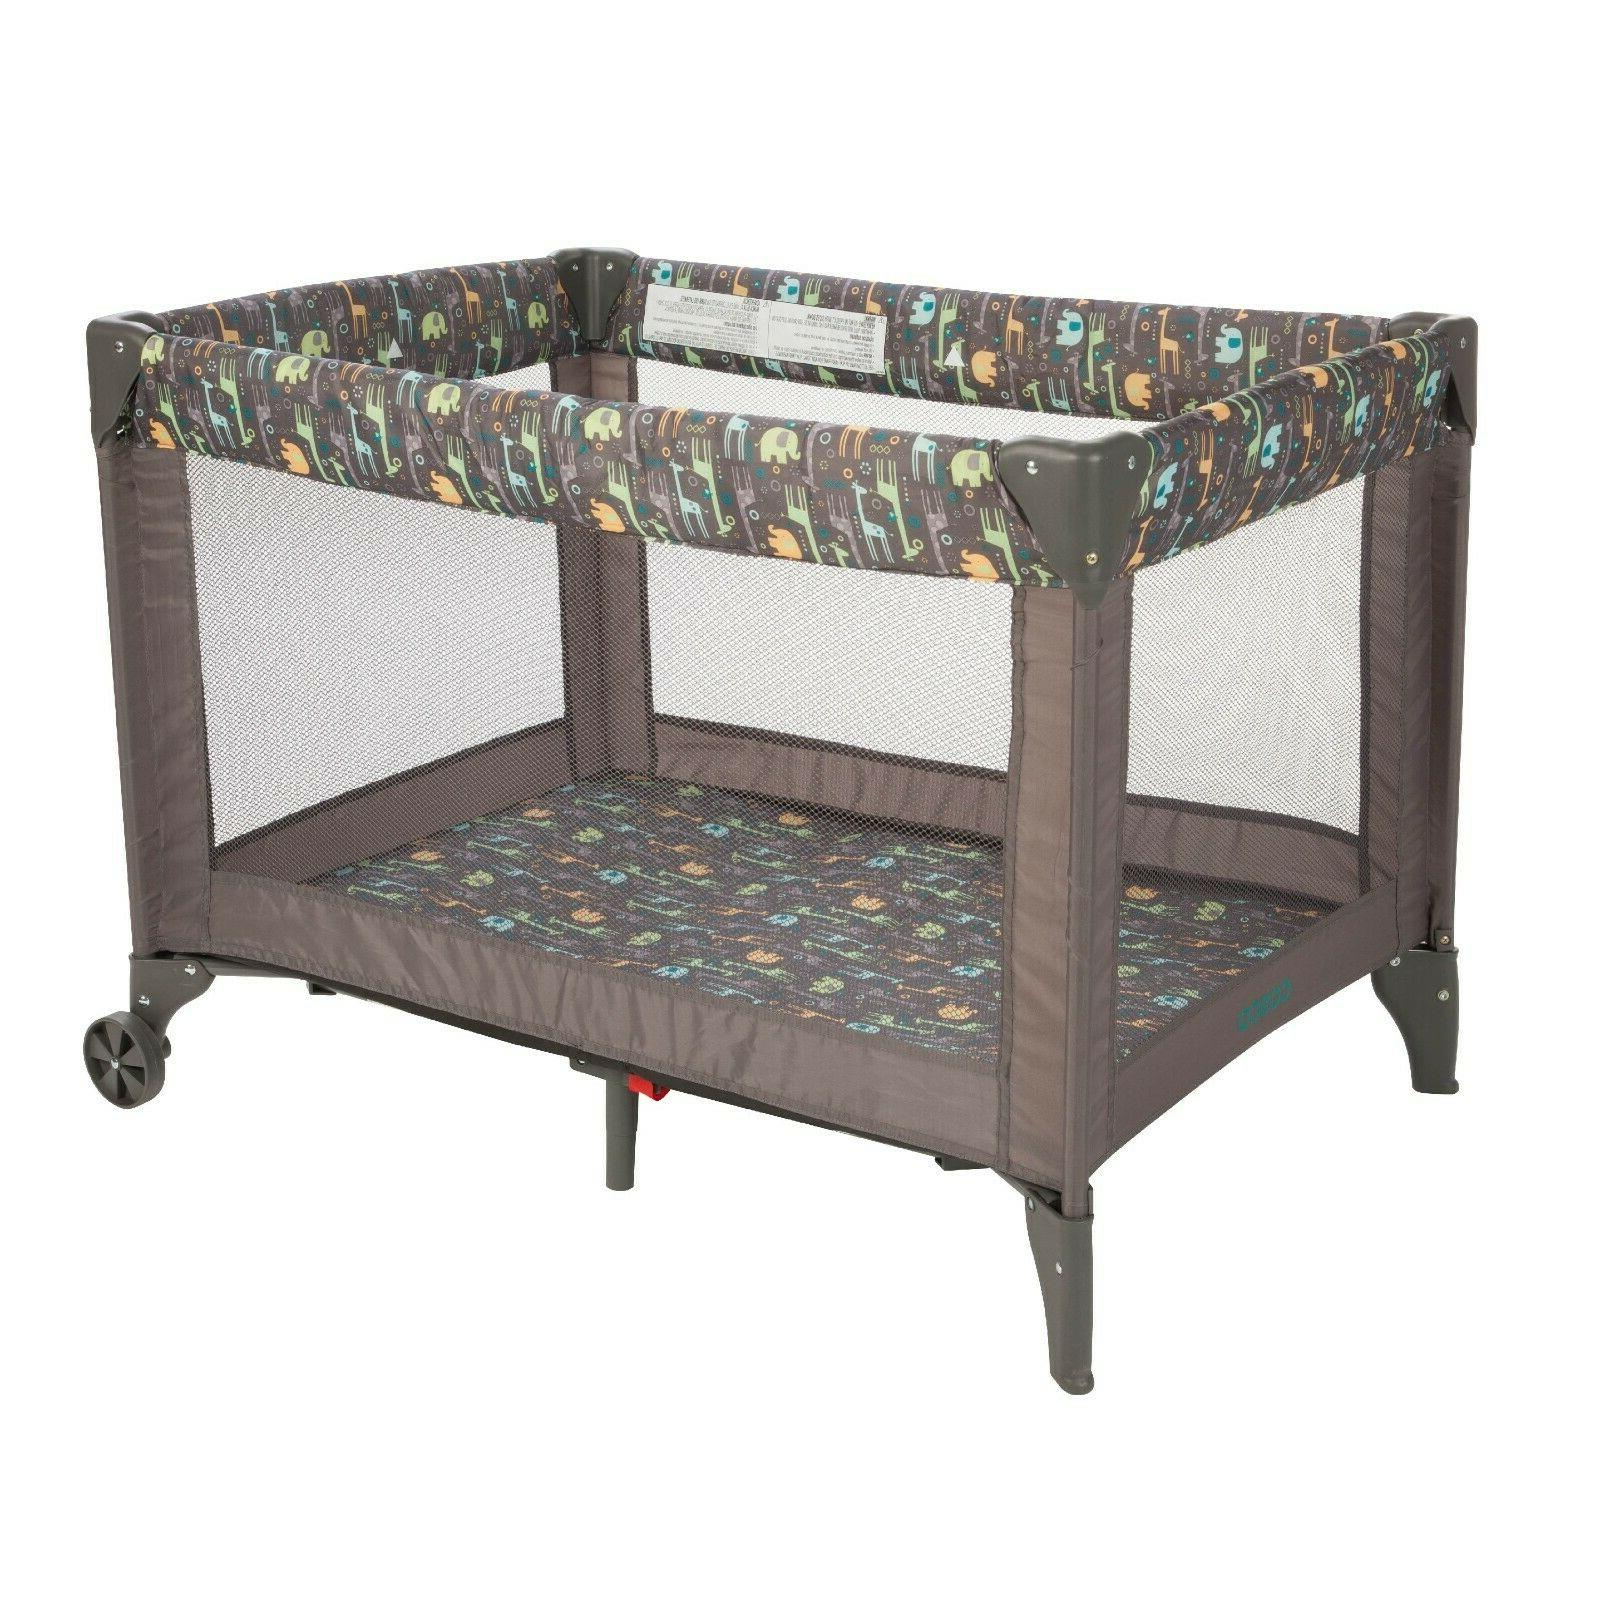 CRIB PLAYPEN Kid Portable